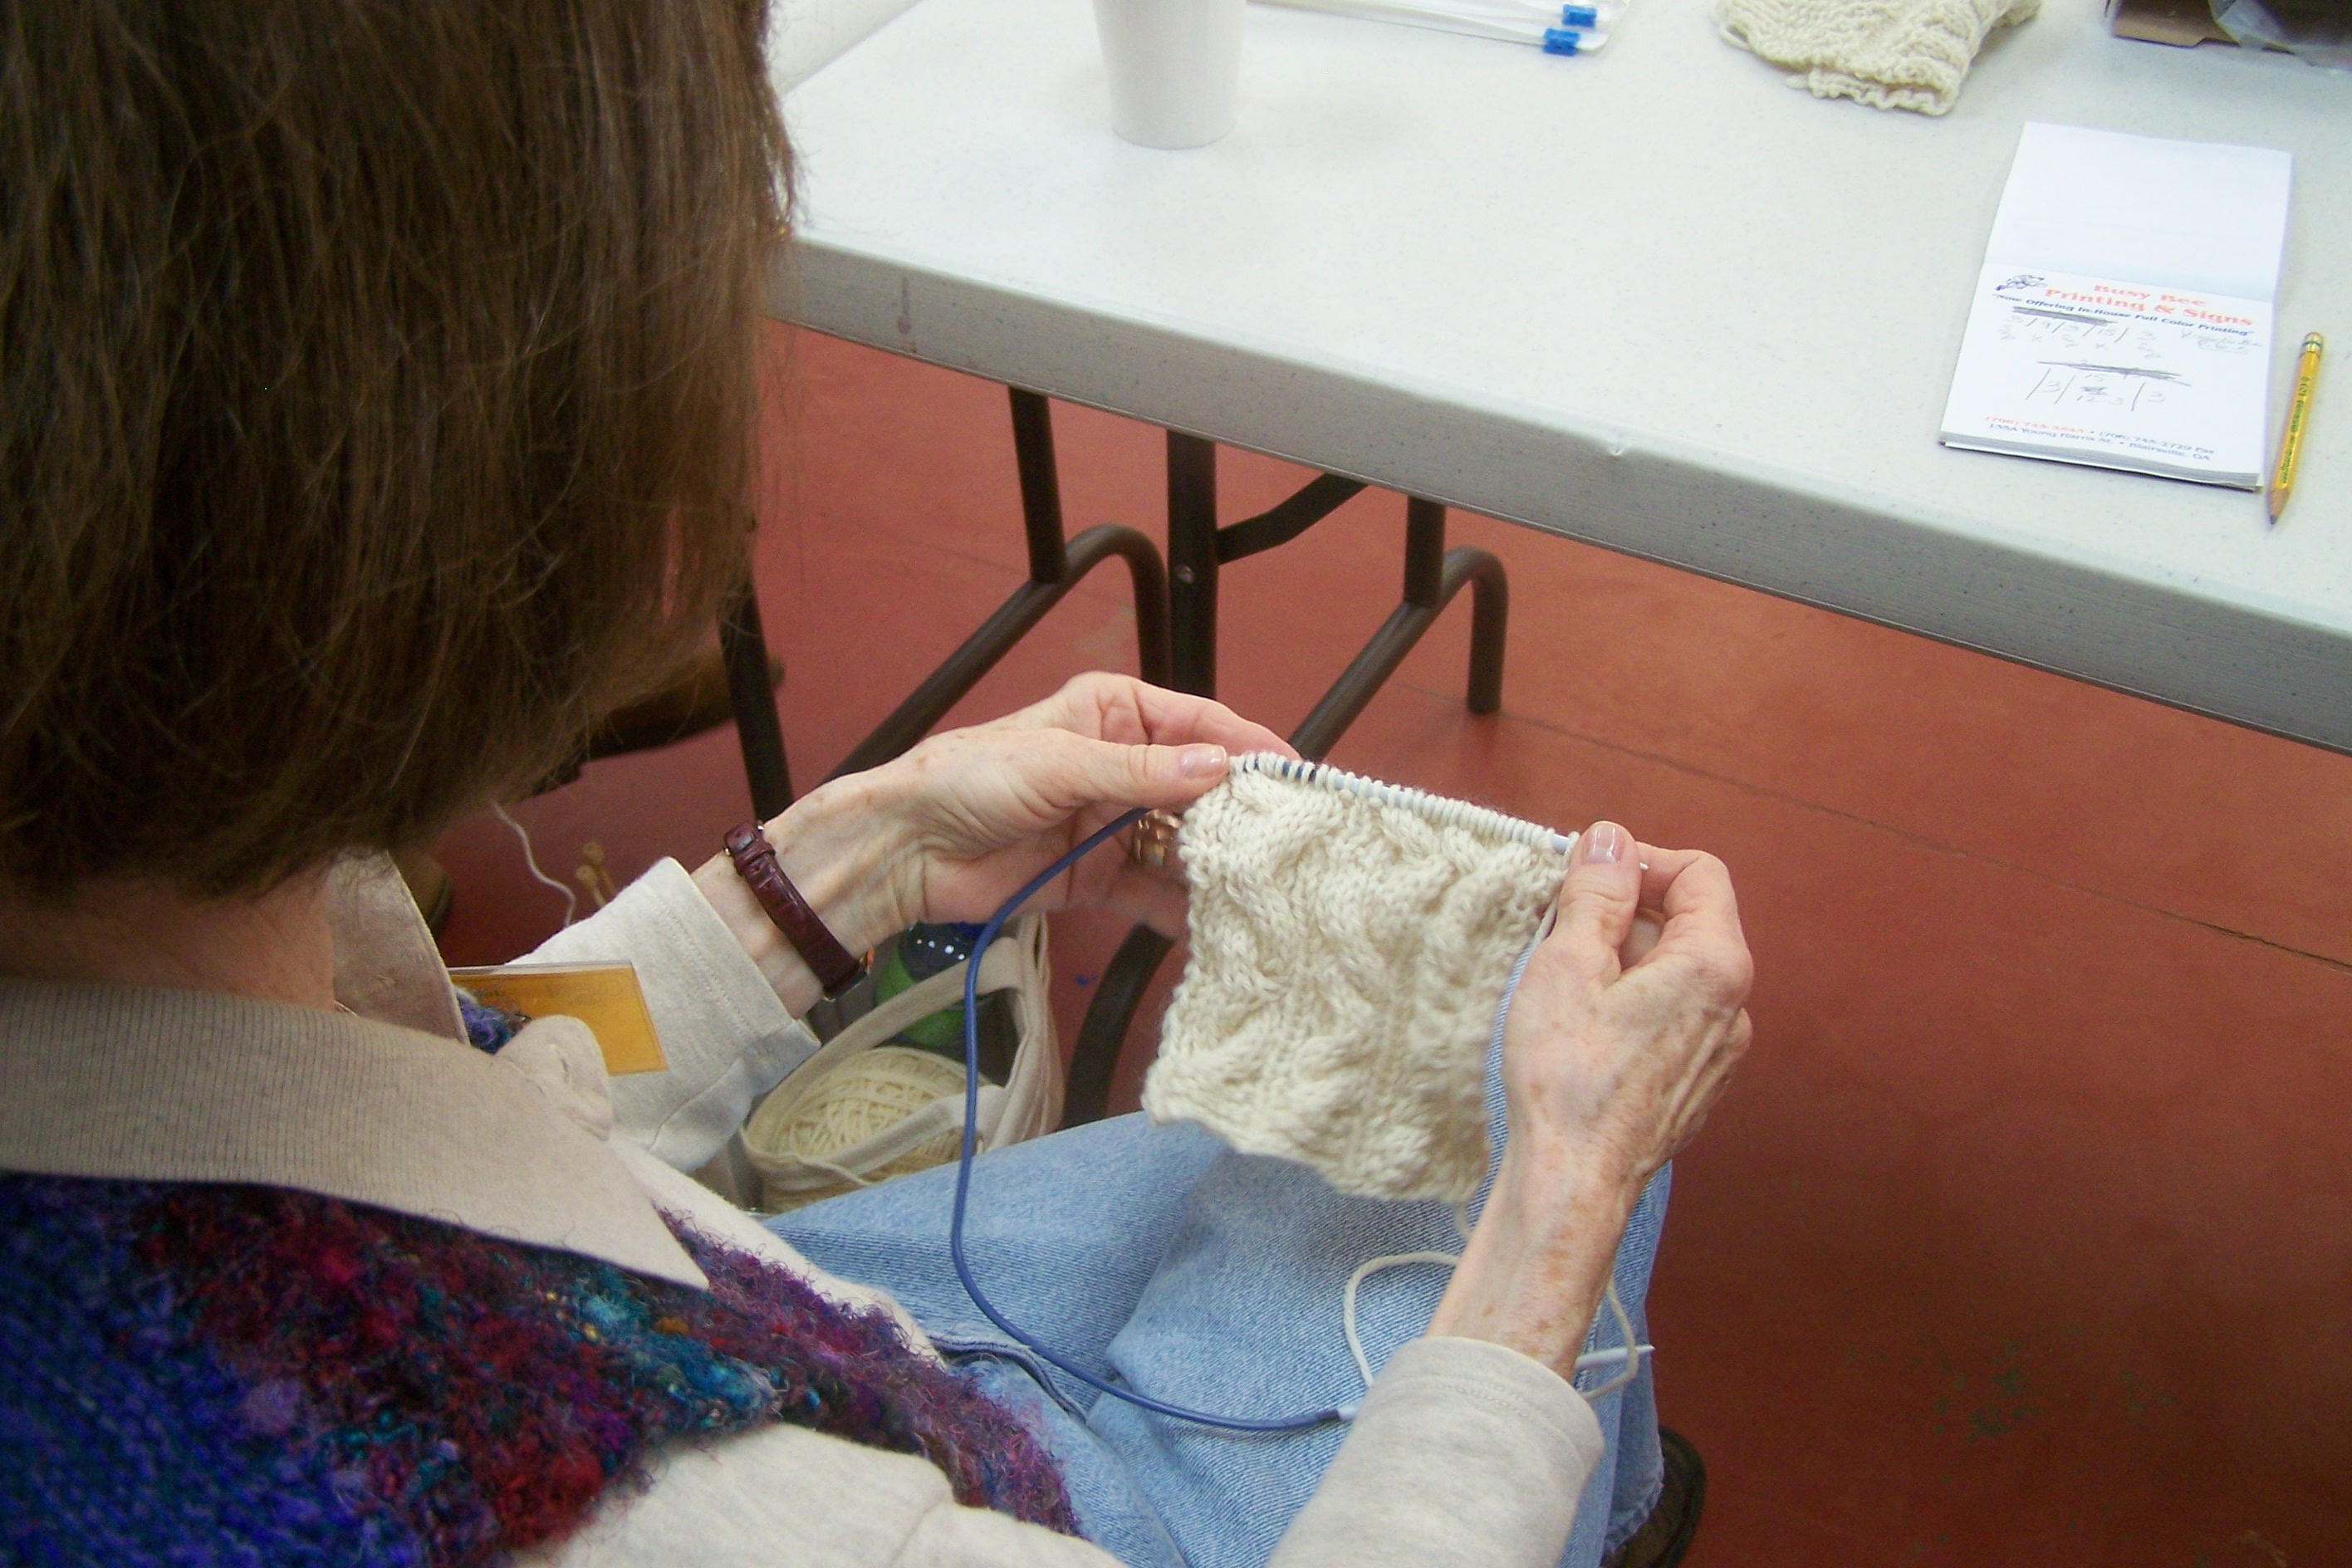 Monday in the Aran Knitting Class